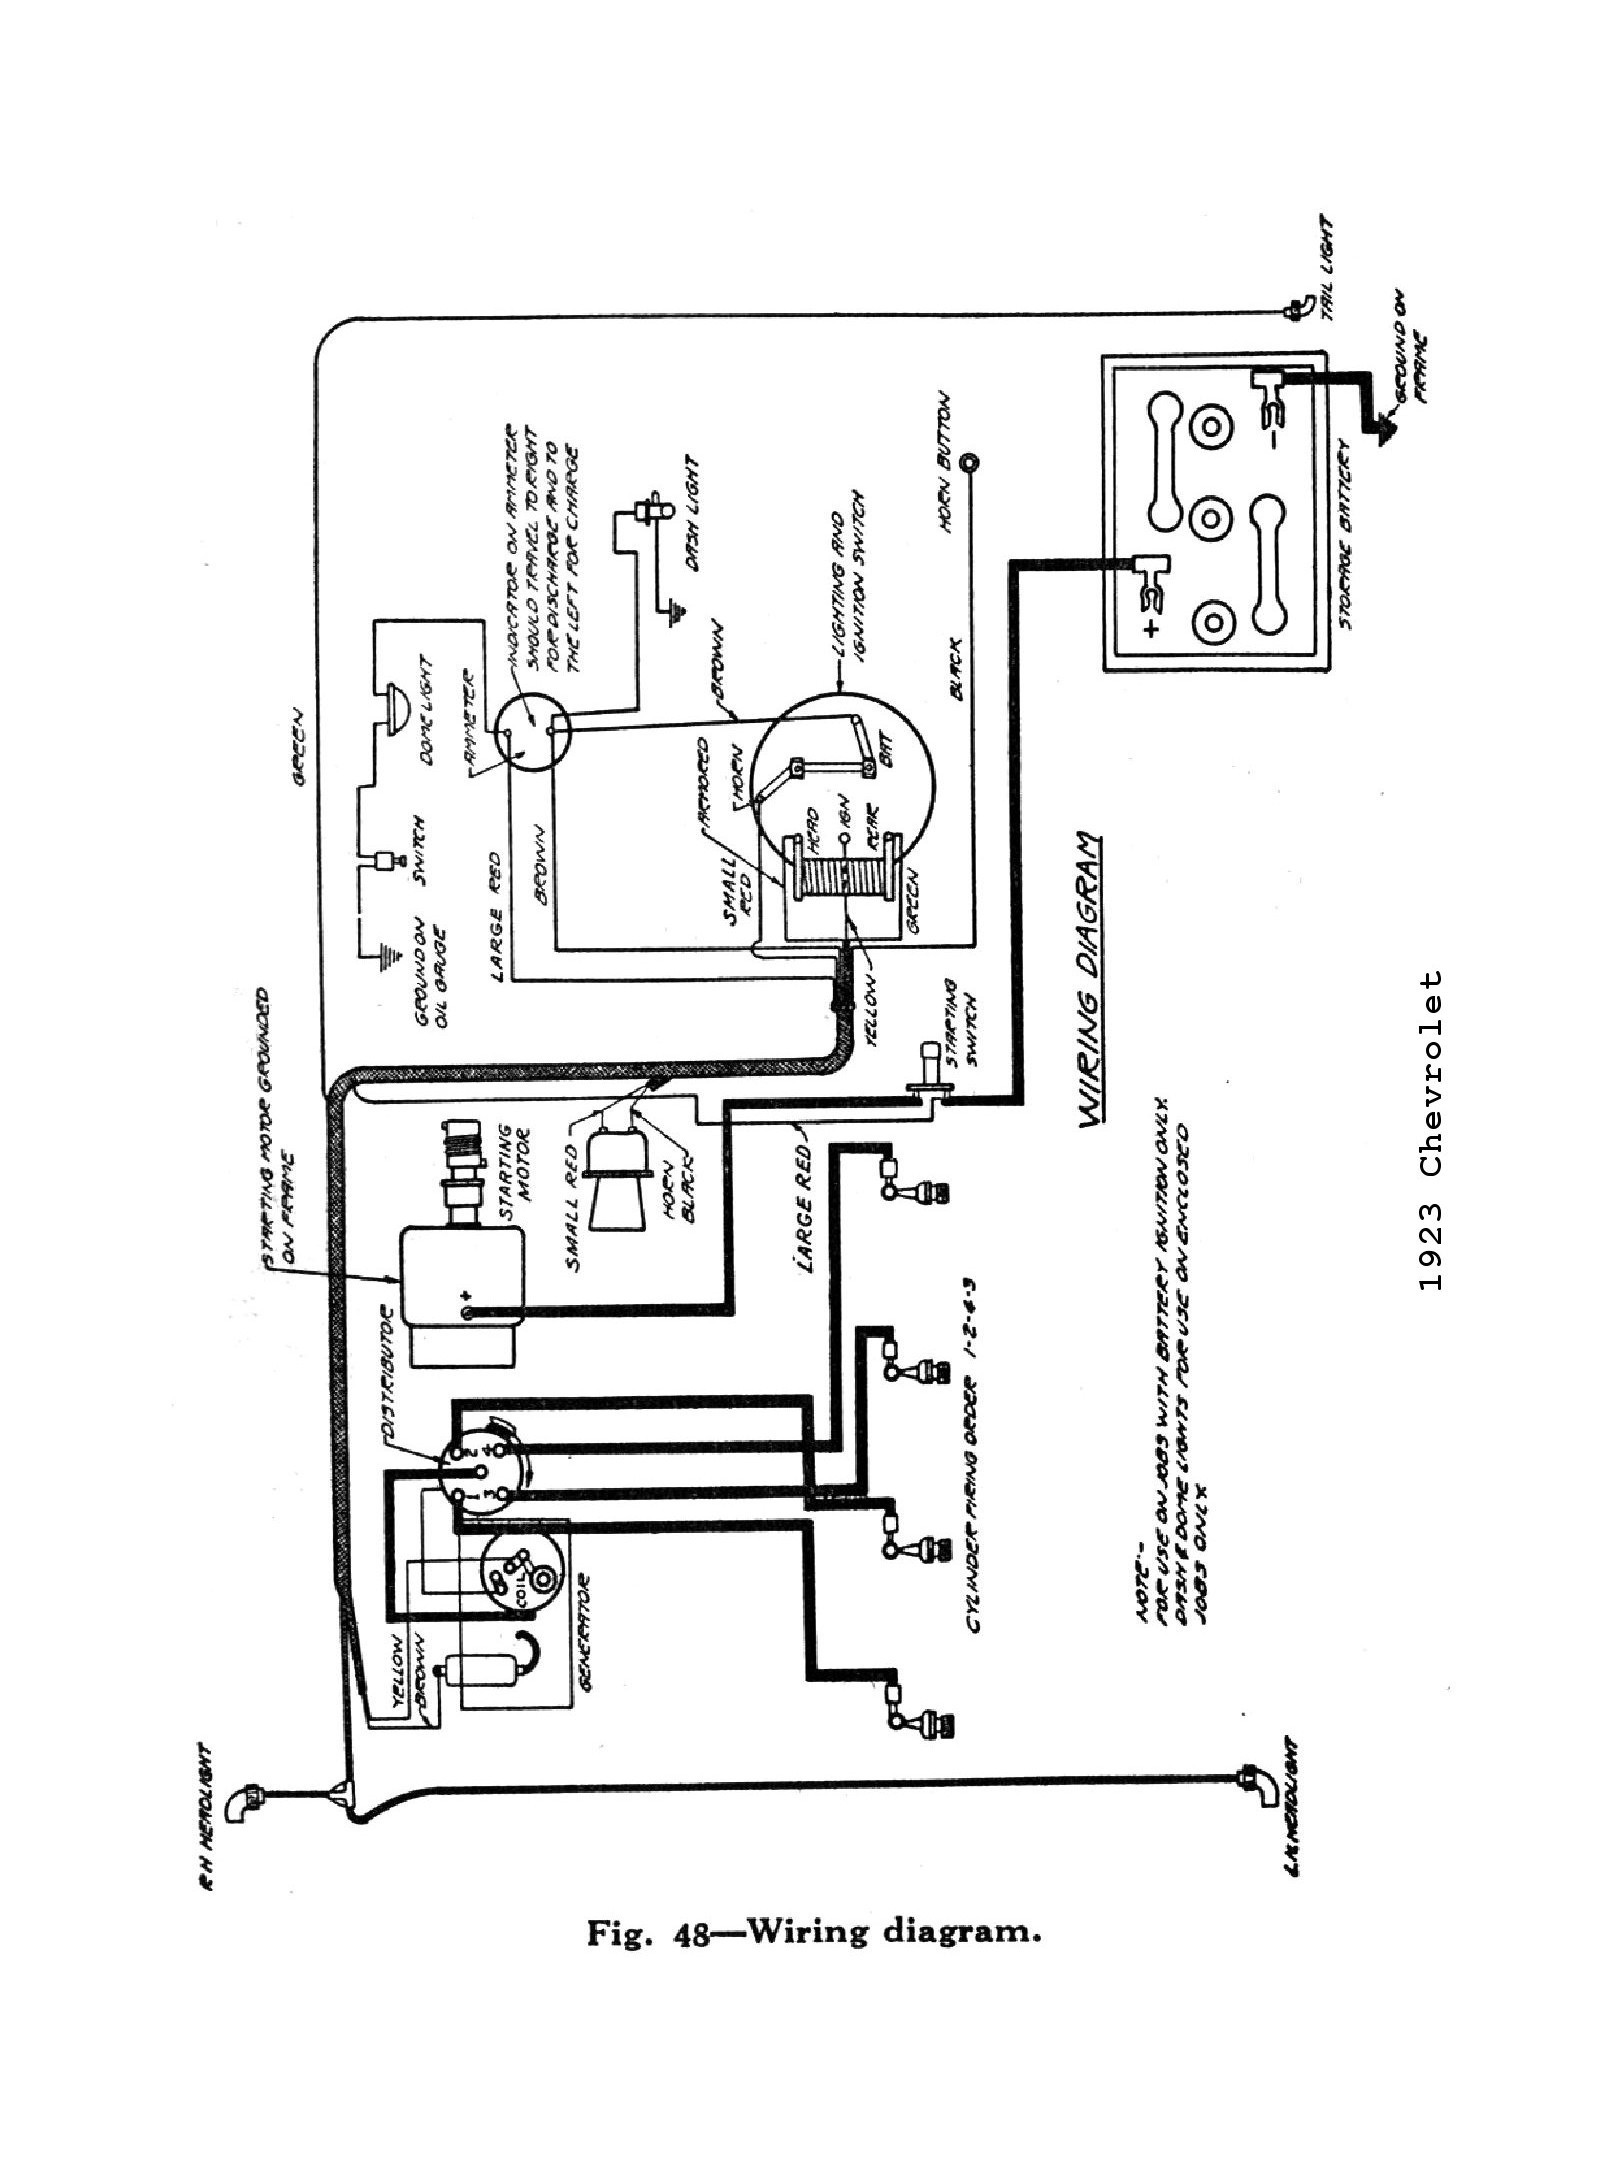 Chevy Truck Wiring Diagrams Free Chevy Wiring Diagrams Of Chevy Truck Wiring Diagrams Free